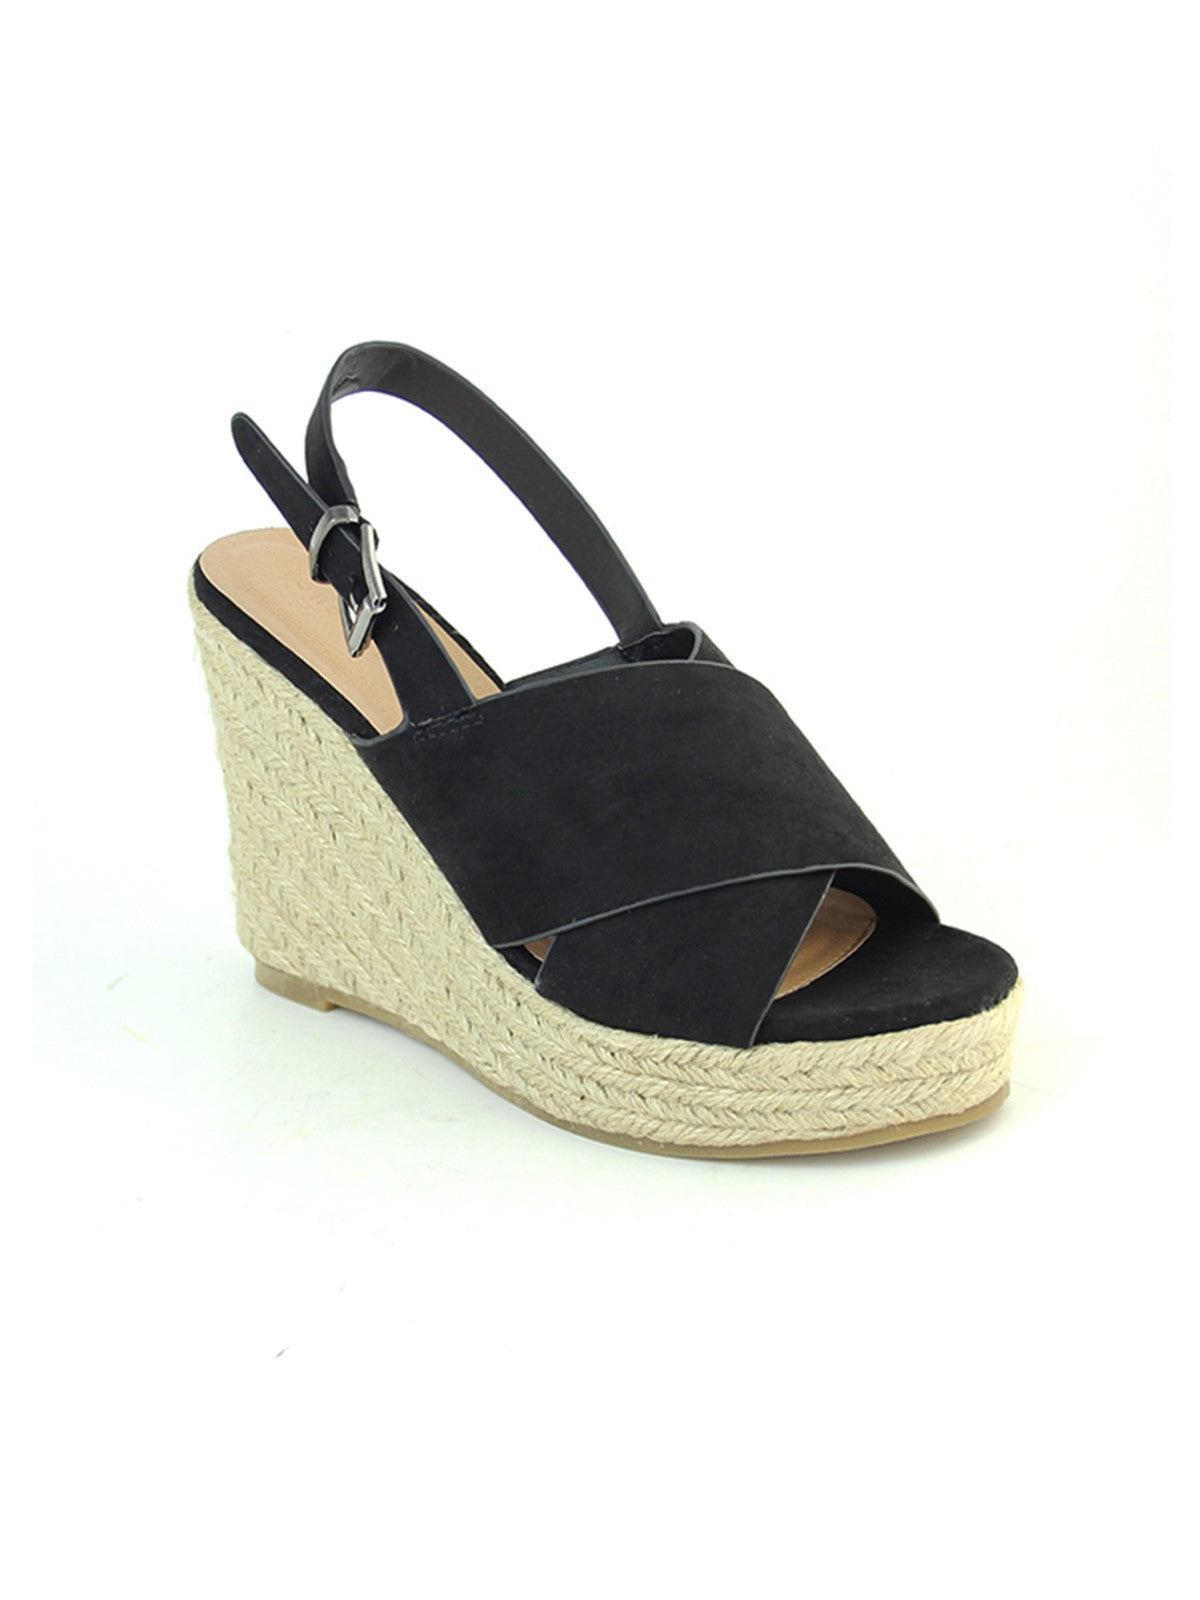 Black Wedge Sandals - London Rag India